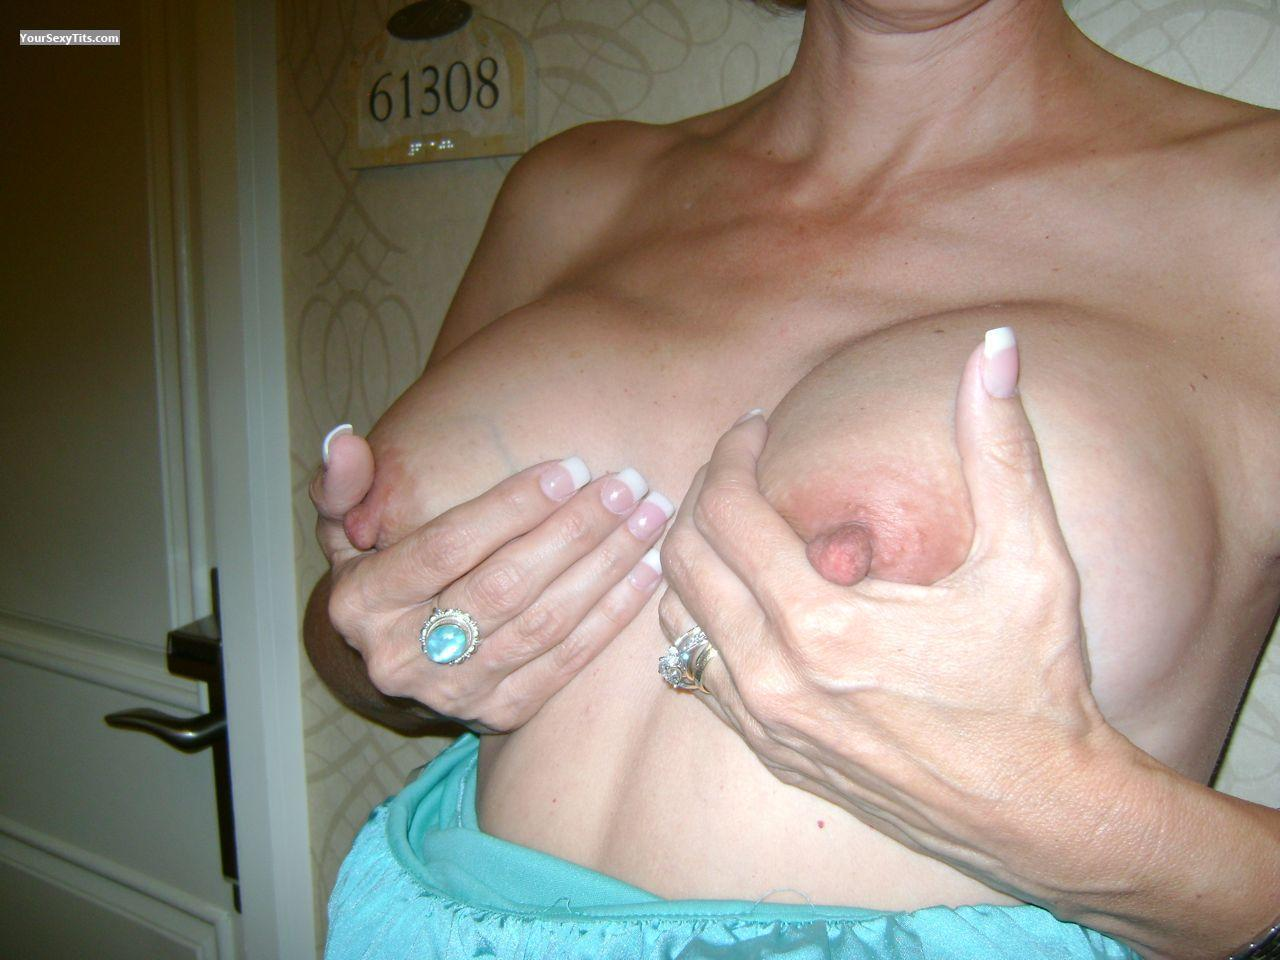 Tit Flash: Medium Tits - Sexy Wife from United States